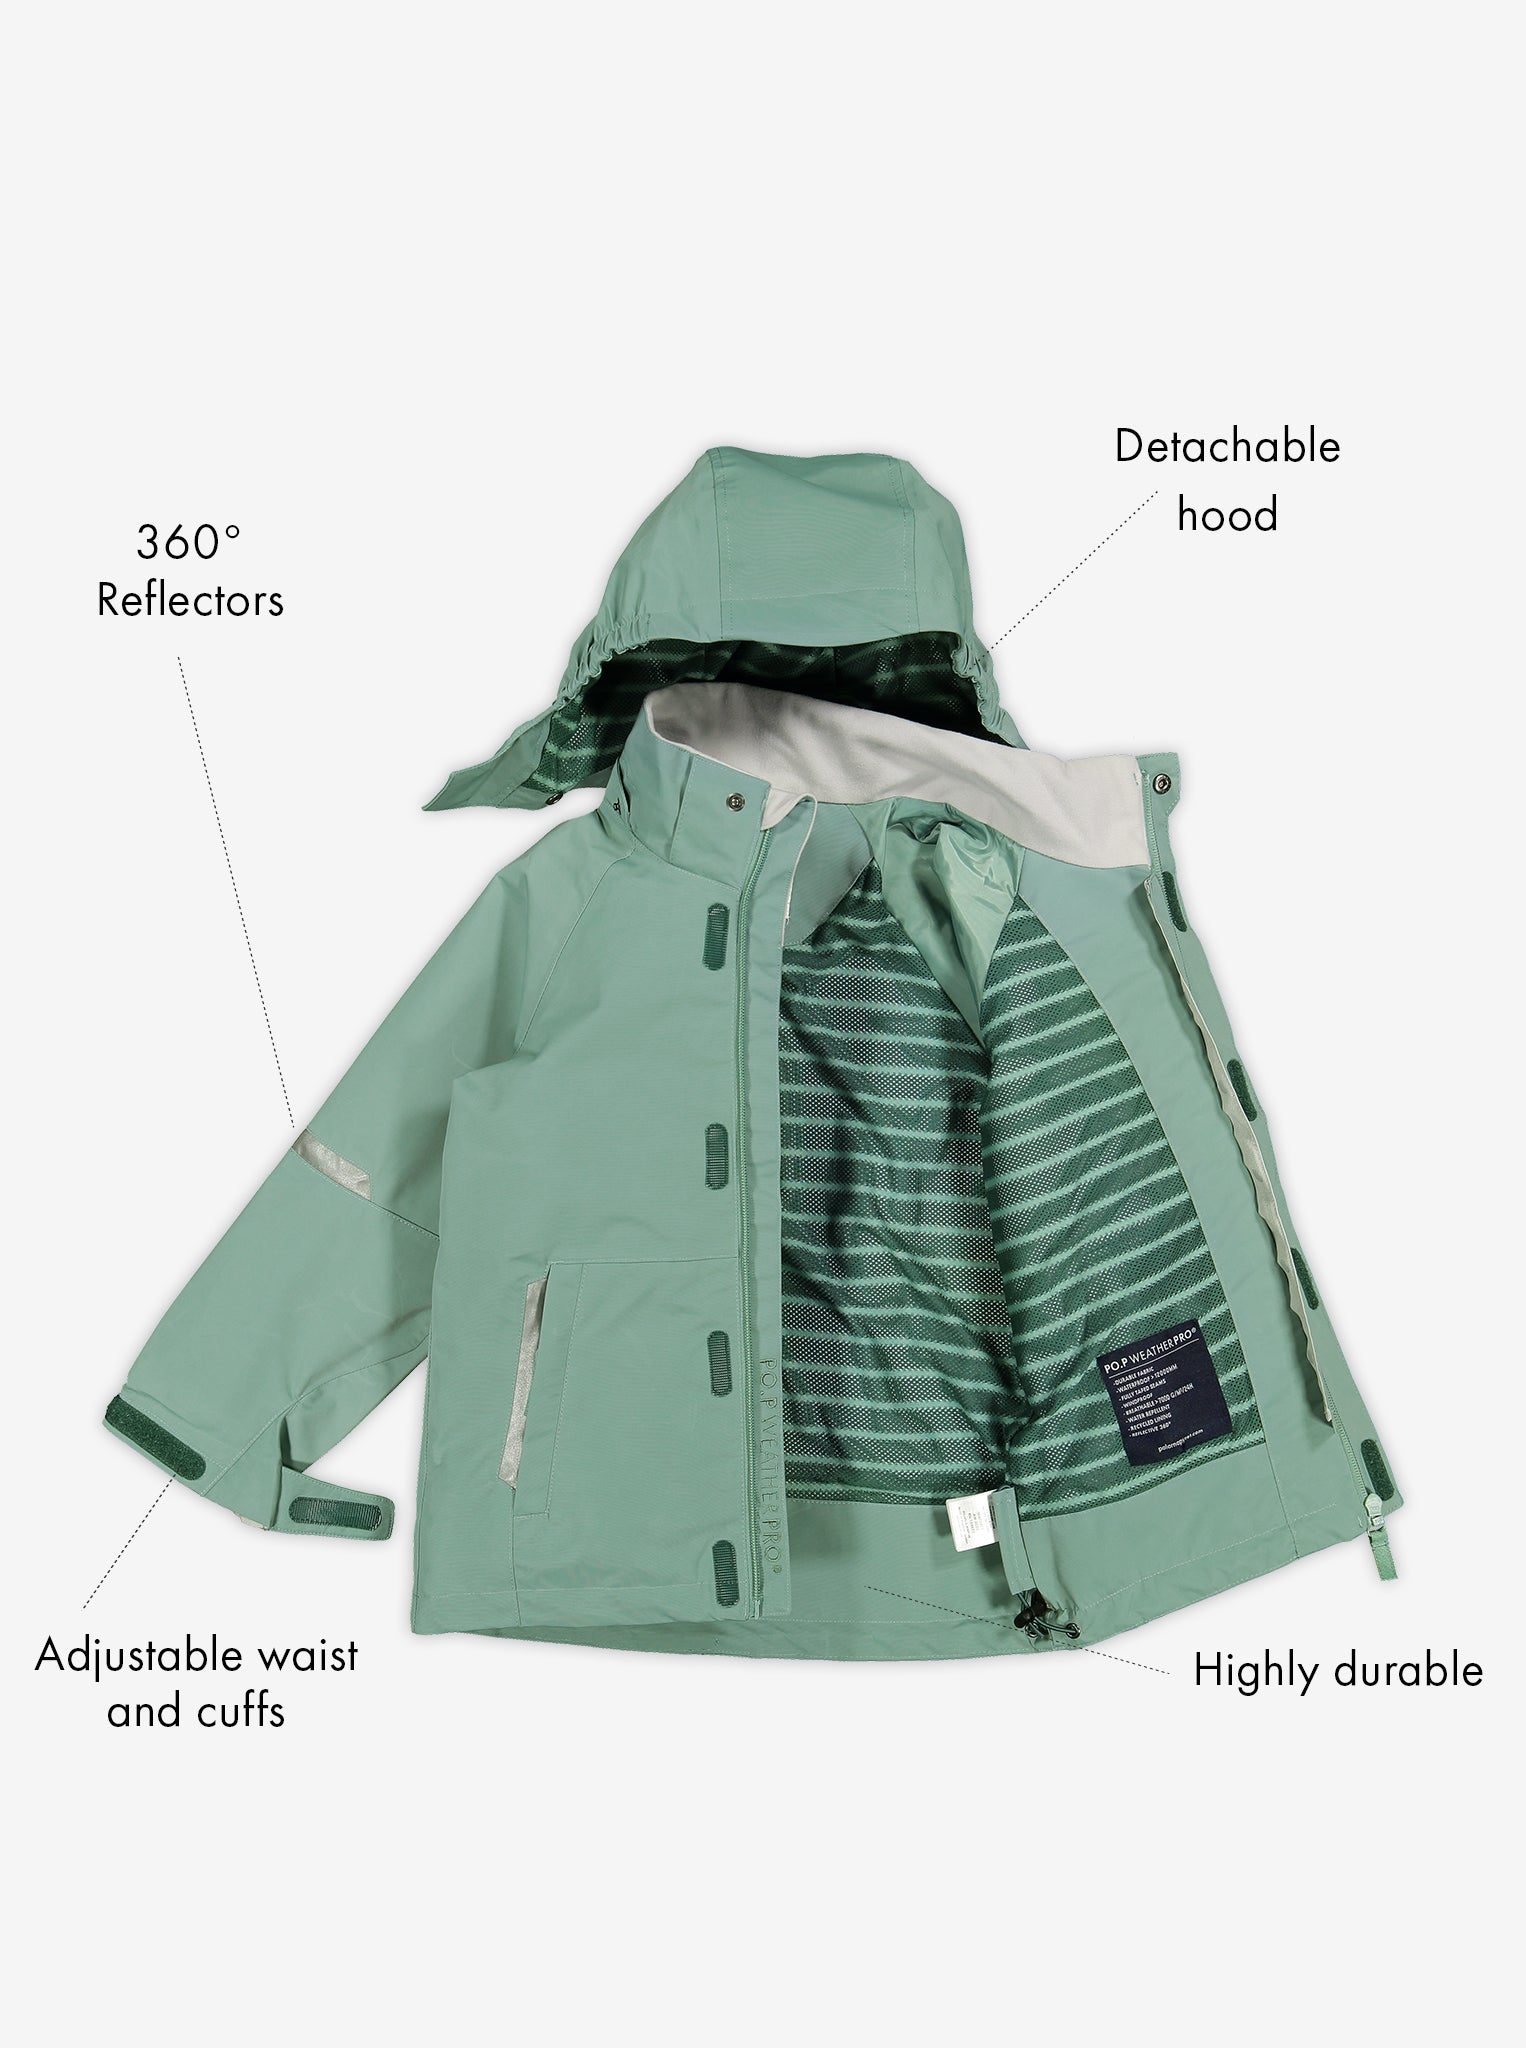 Lightweight kids waterproof jacket in colour green, includes a detachable hood, reflectors and adjustable waist and cuffs.